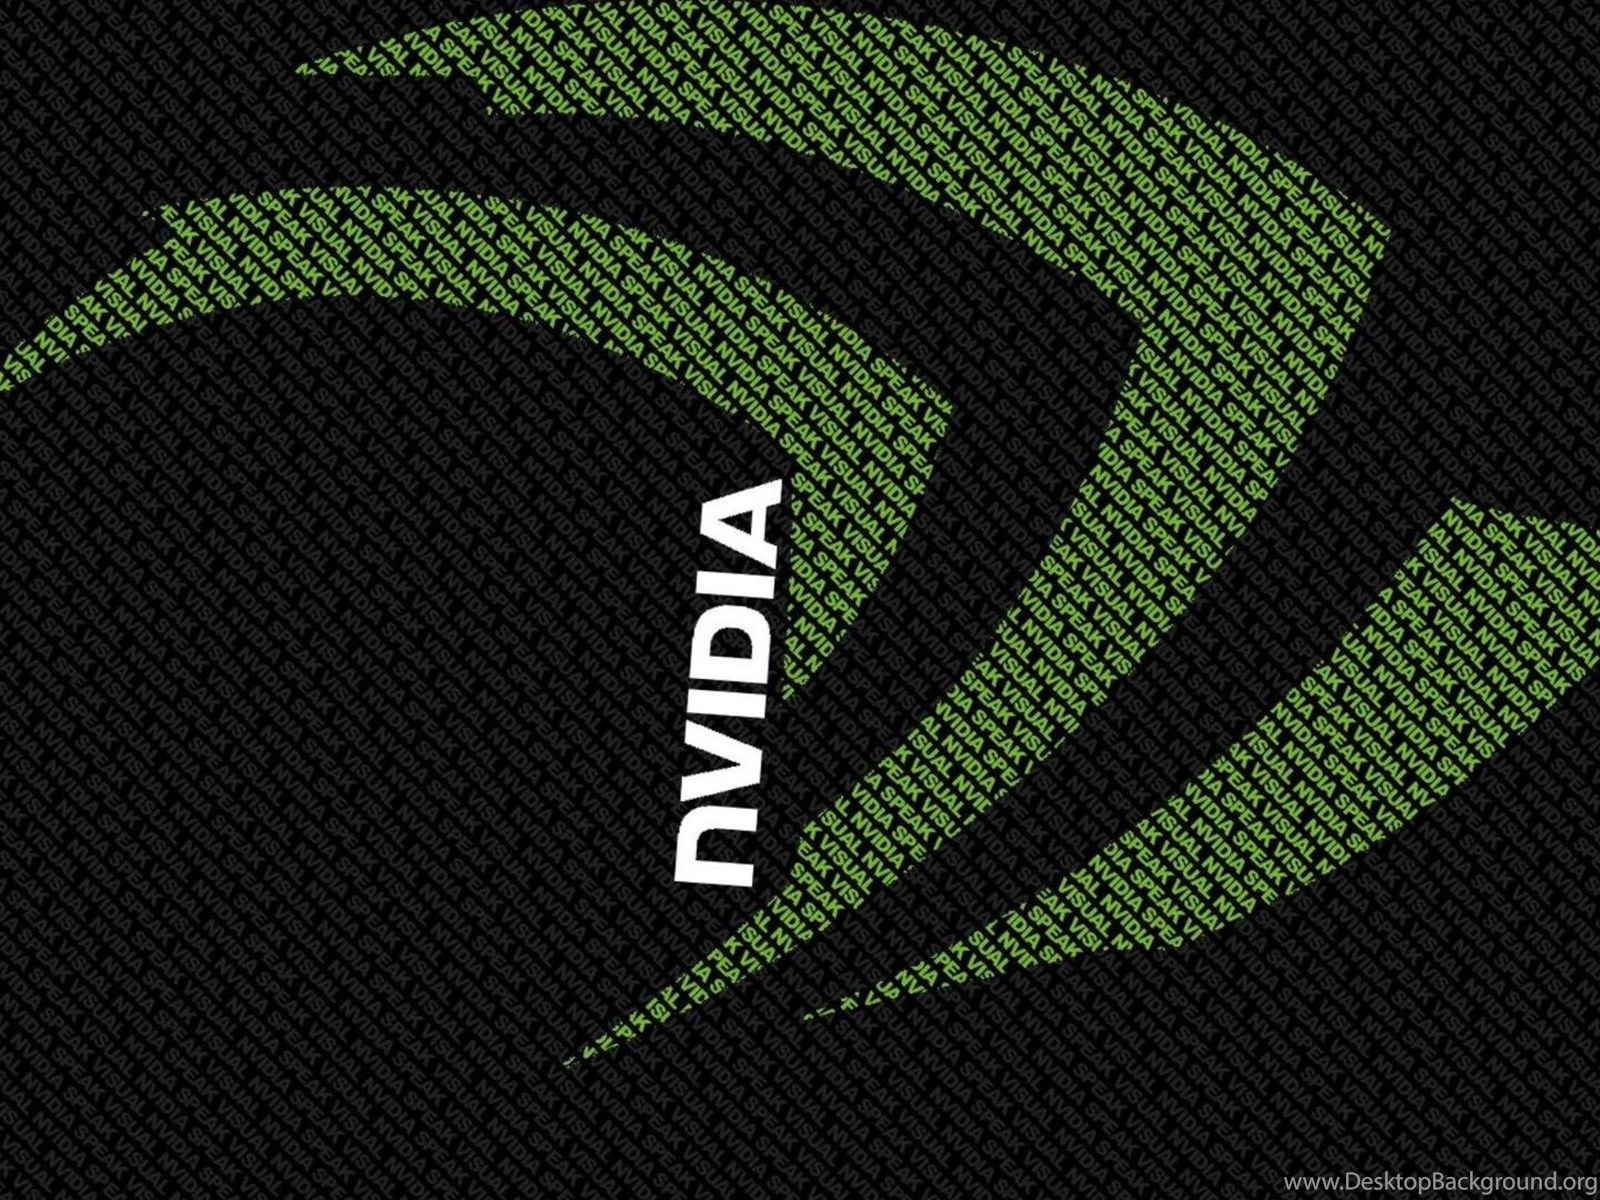 4k ultra hd nvidia wallpapers hd desktop backgrounds